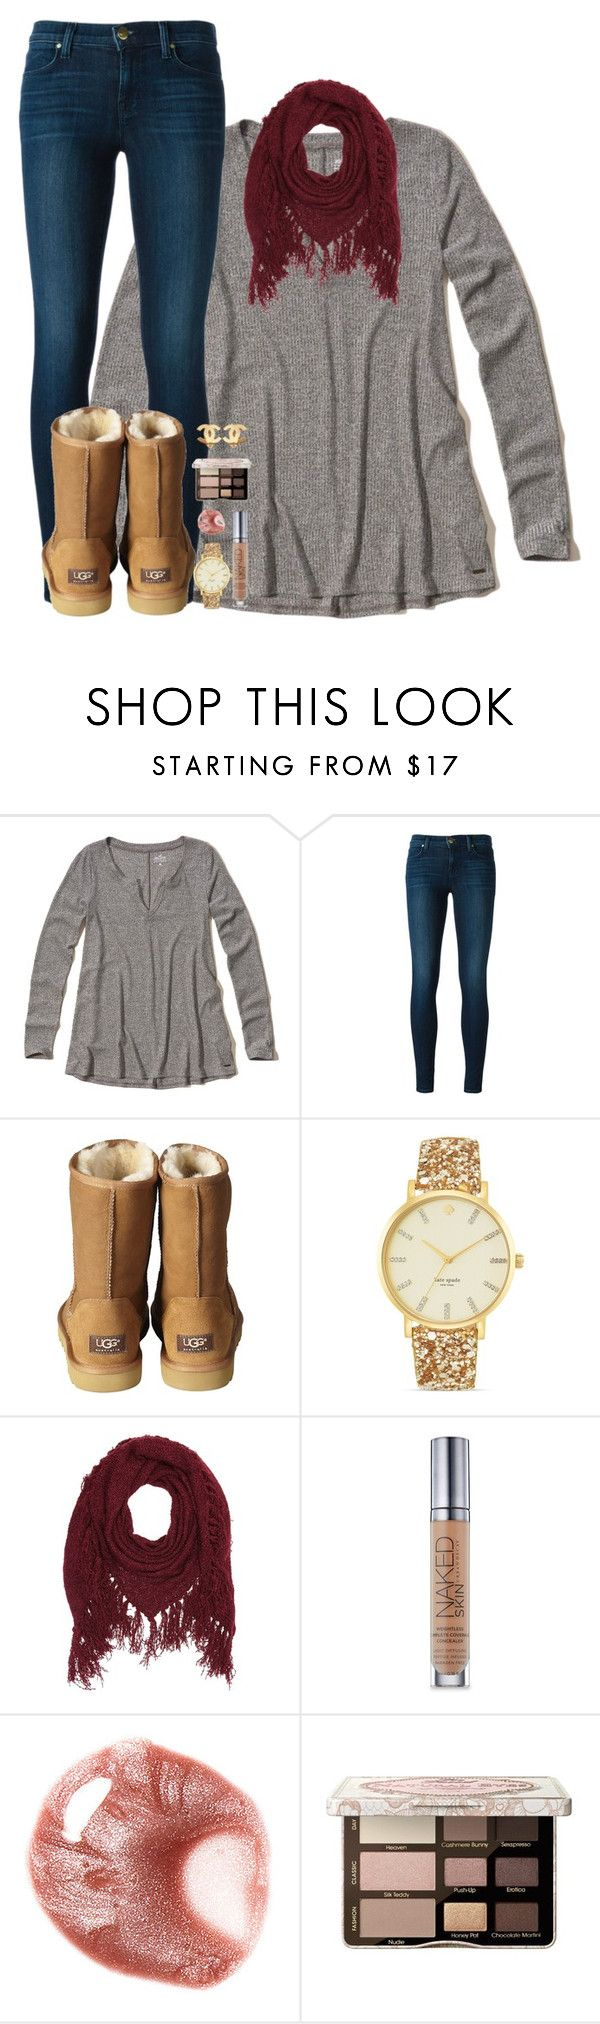 """braces are horrible😵"" by mehanahan ❤ liked on Polyvore featuring Hollister Co., J Brand, UGG Australia, Kate Spade, Charlotte Russe, Urban Decay, Too Faced Cosmetics and Chanel"